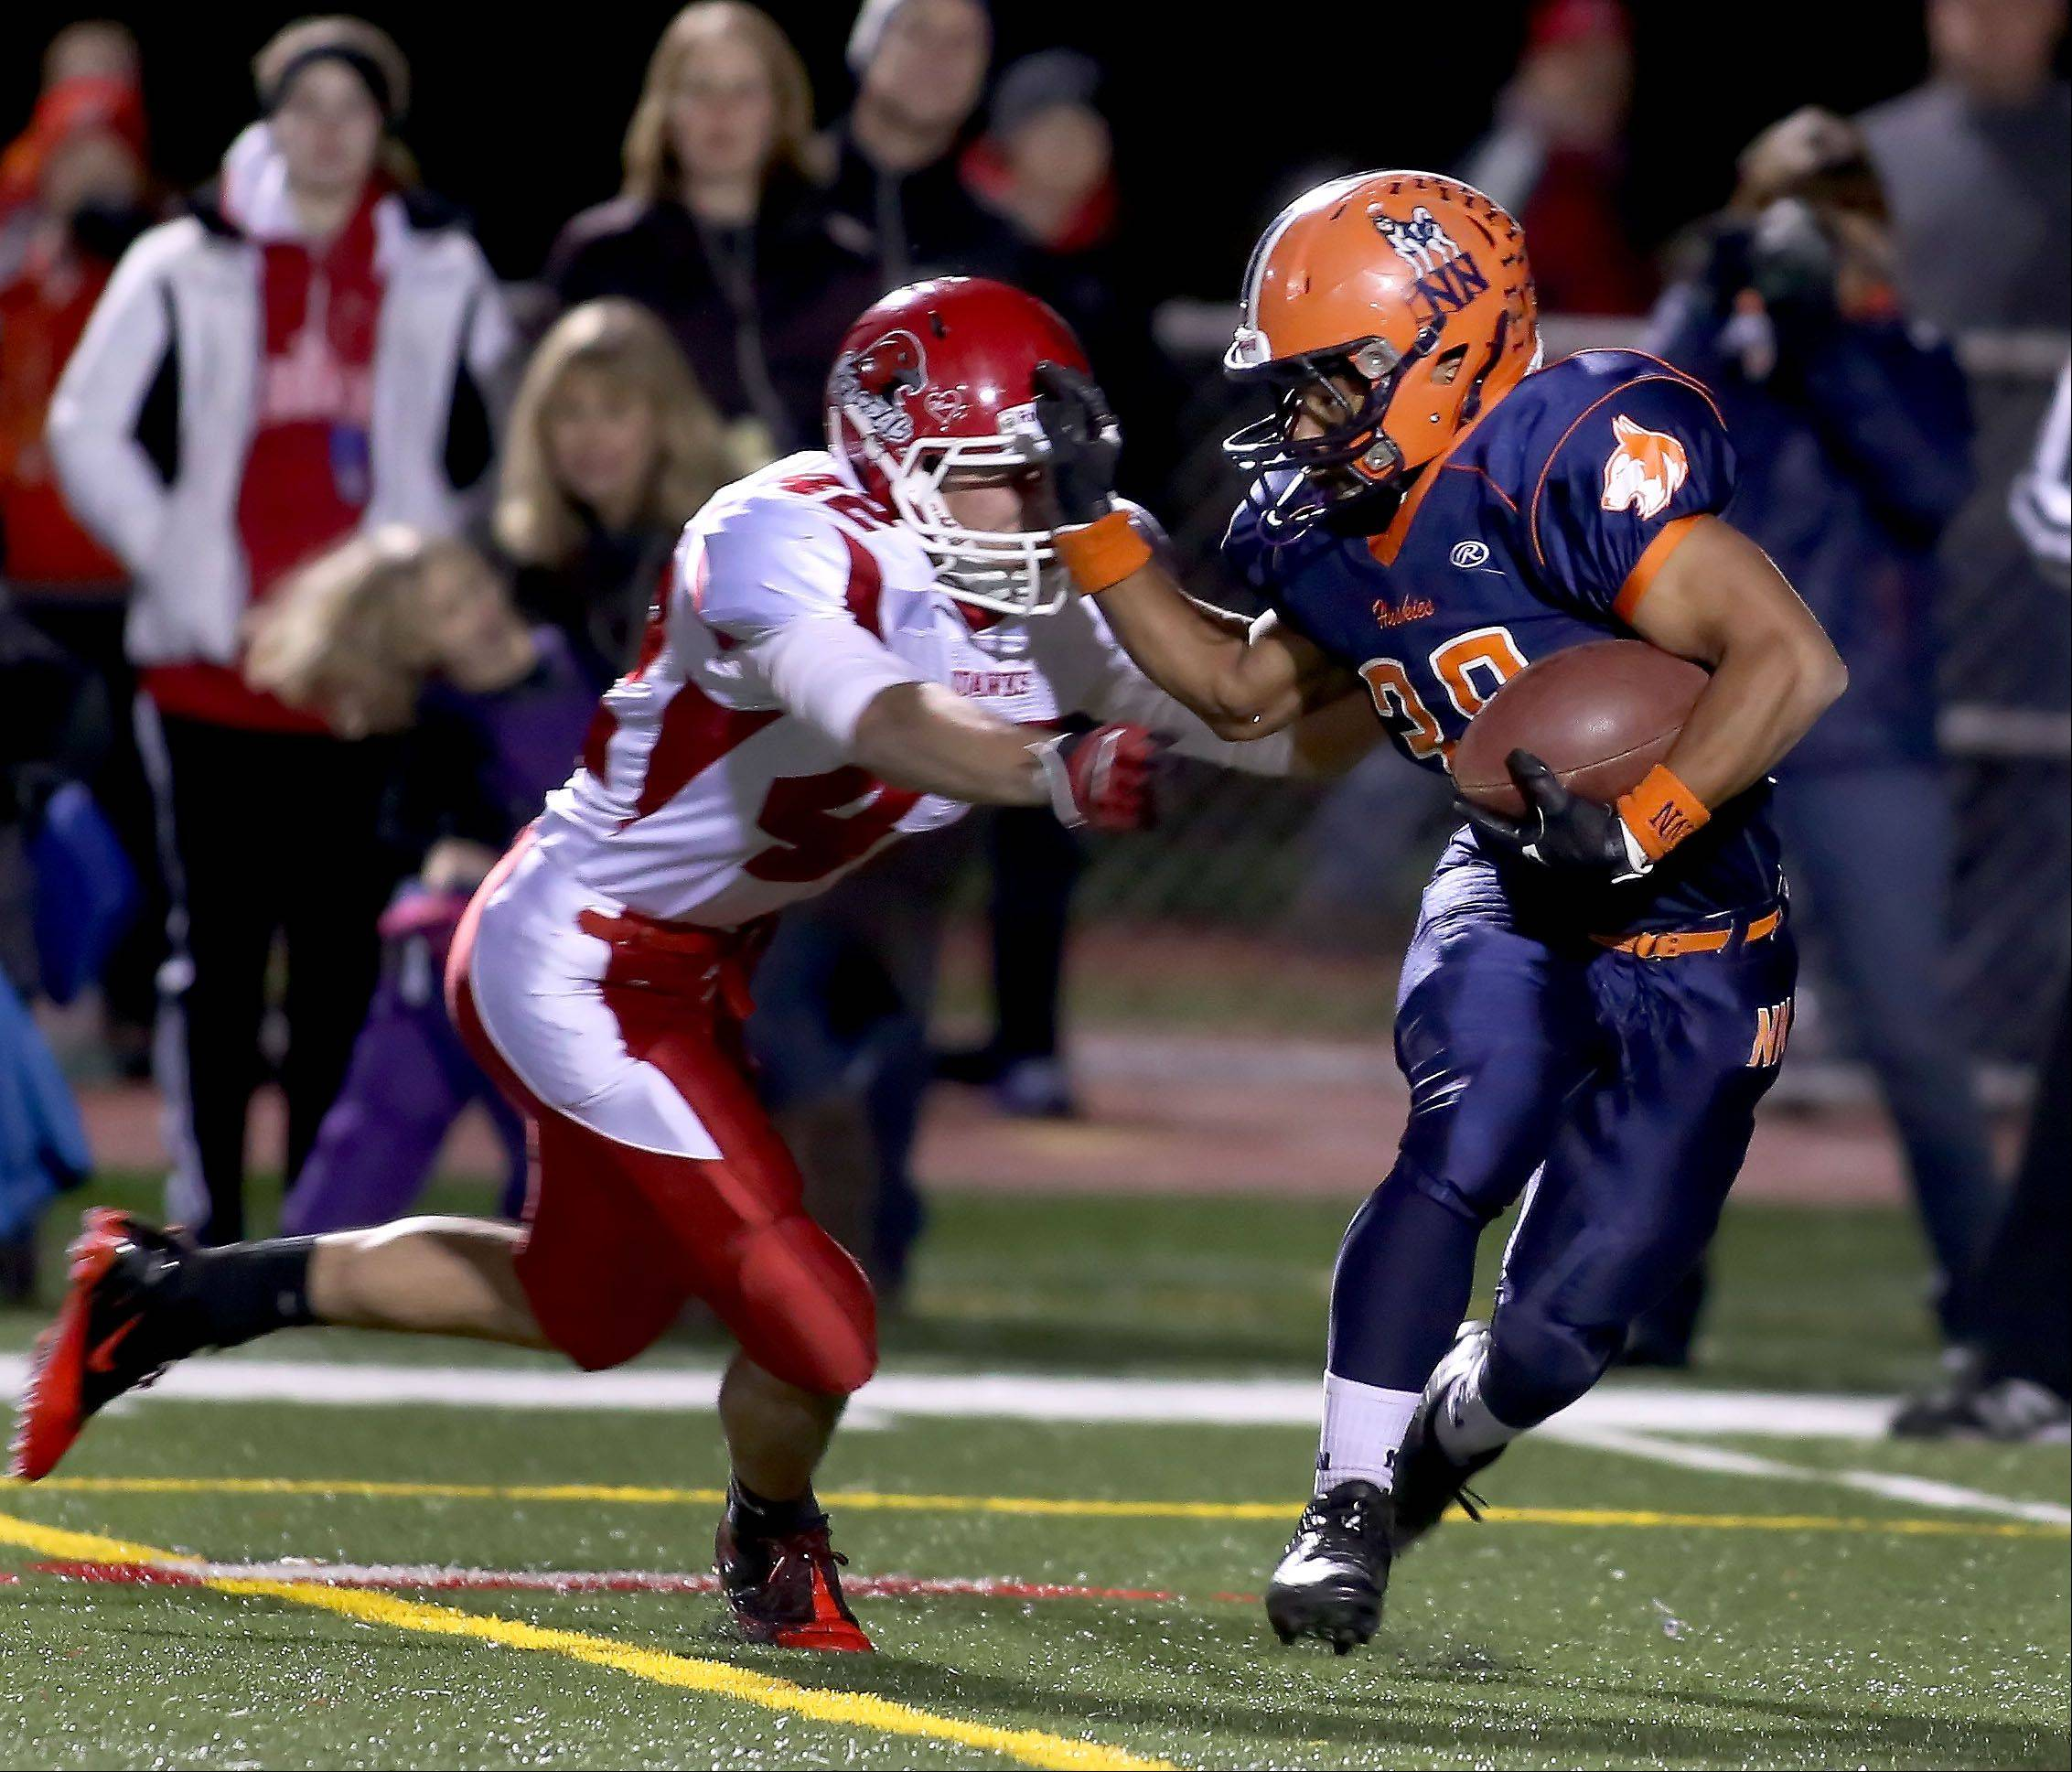 Daniel Spaccapaniccia of Naperville Central moves in to tackle Adam Milsap of Naperville North.